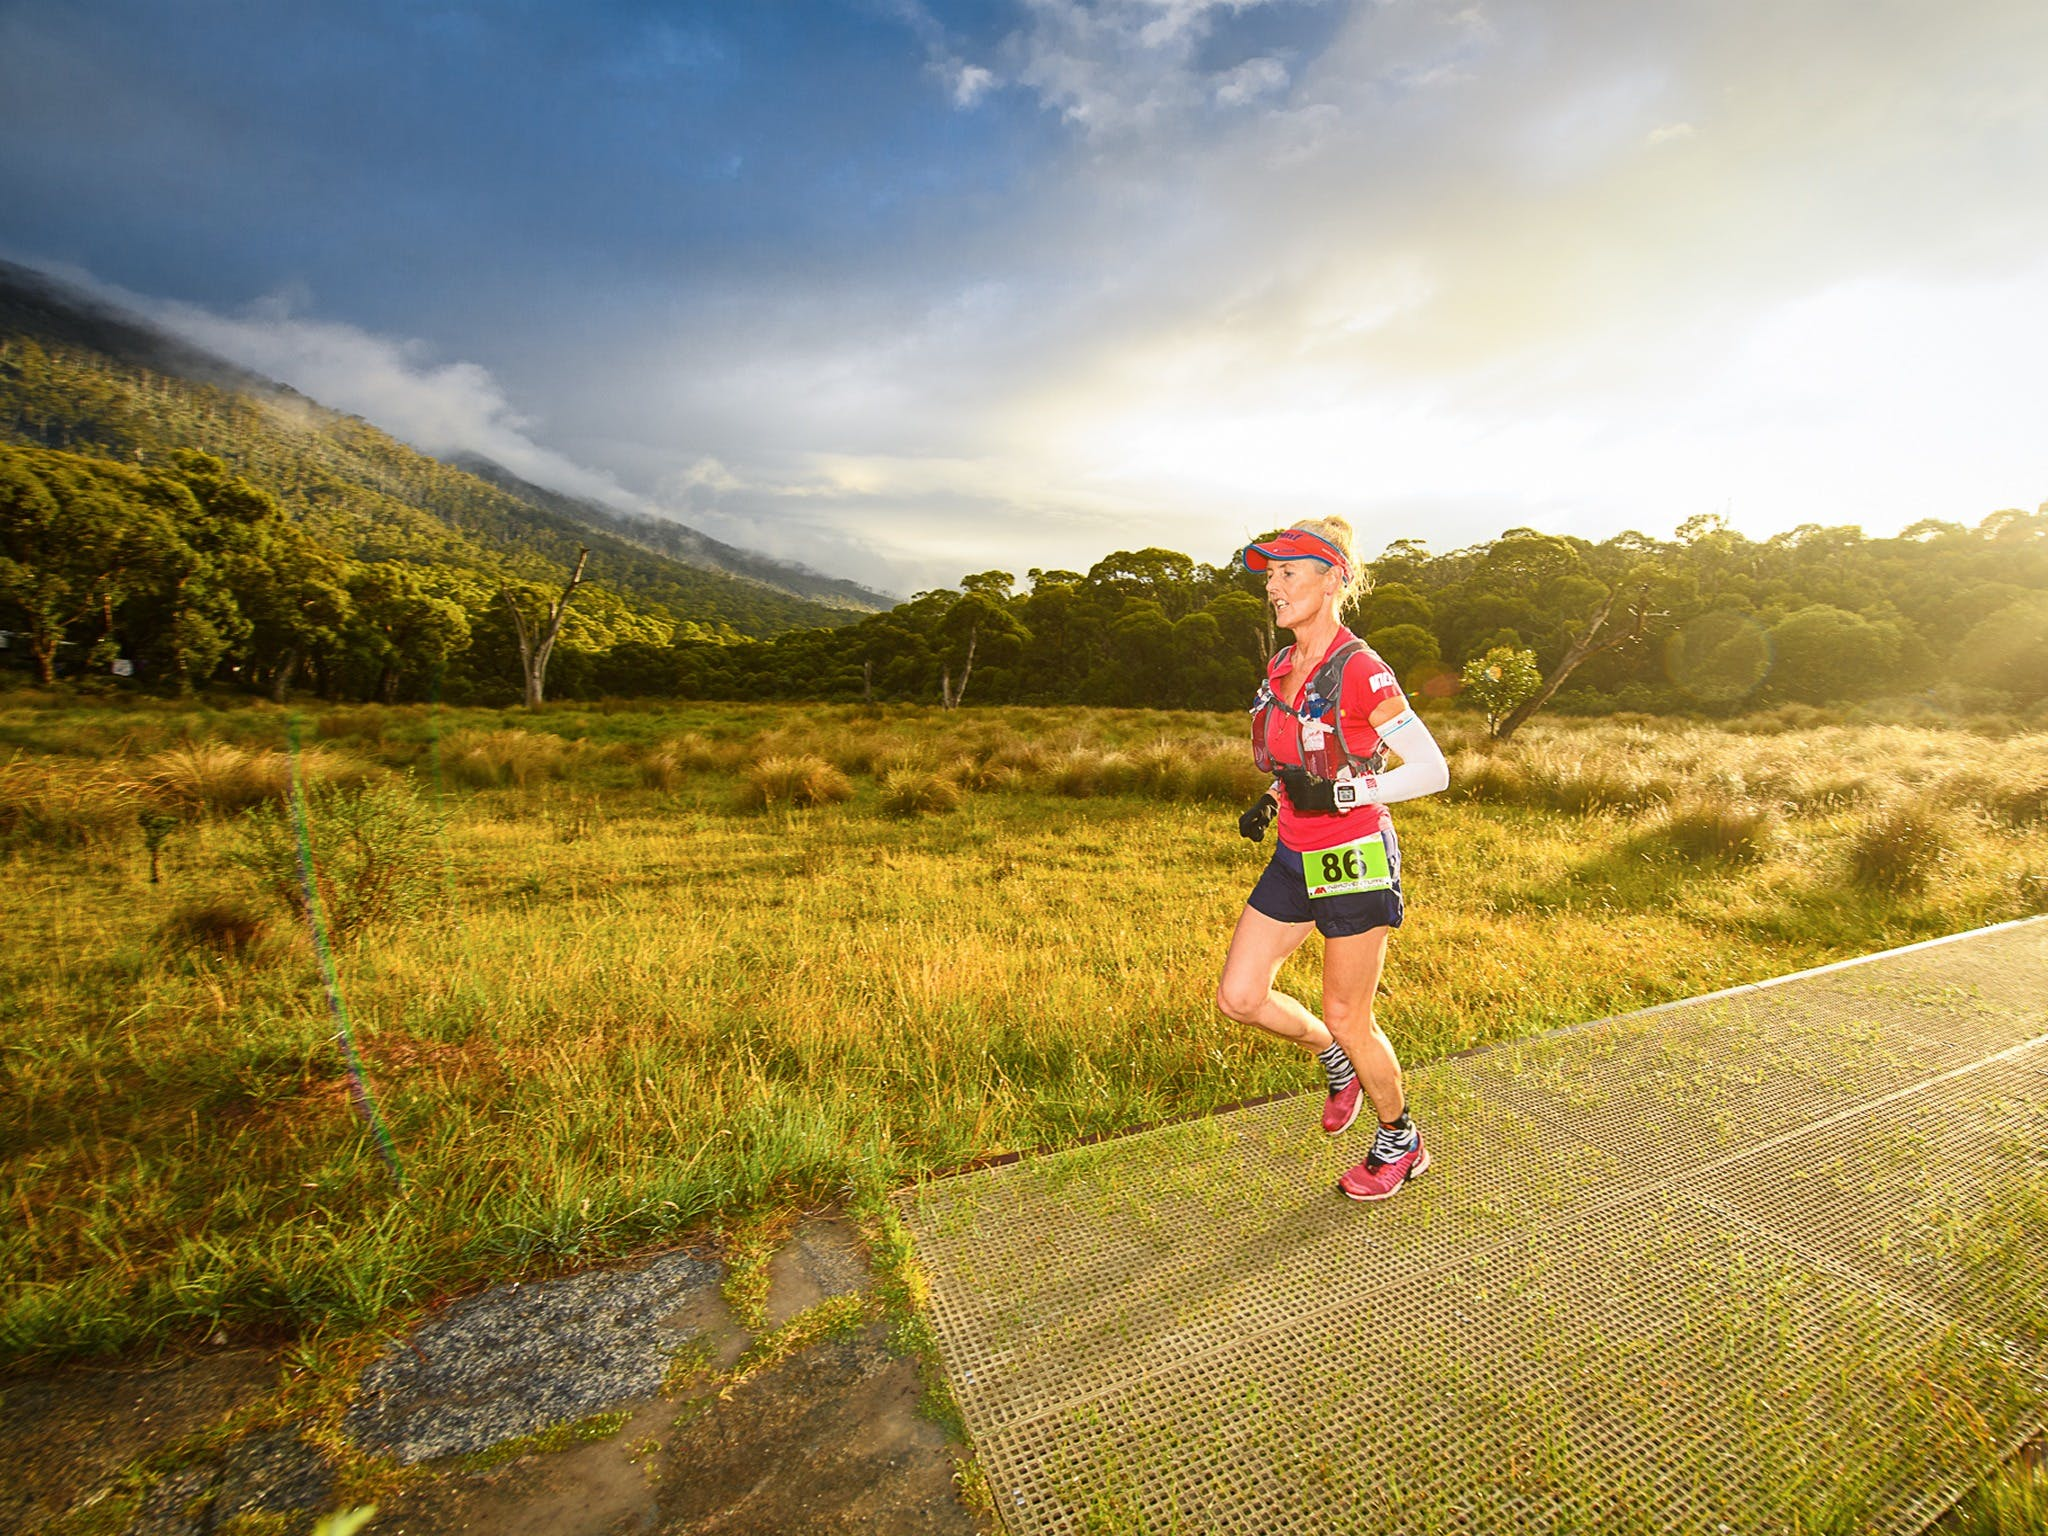 Trail Run Australia  Snowy Mountains - Accommodation in Surfers Paradise